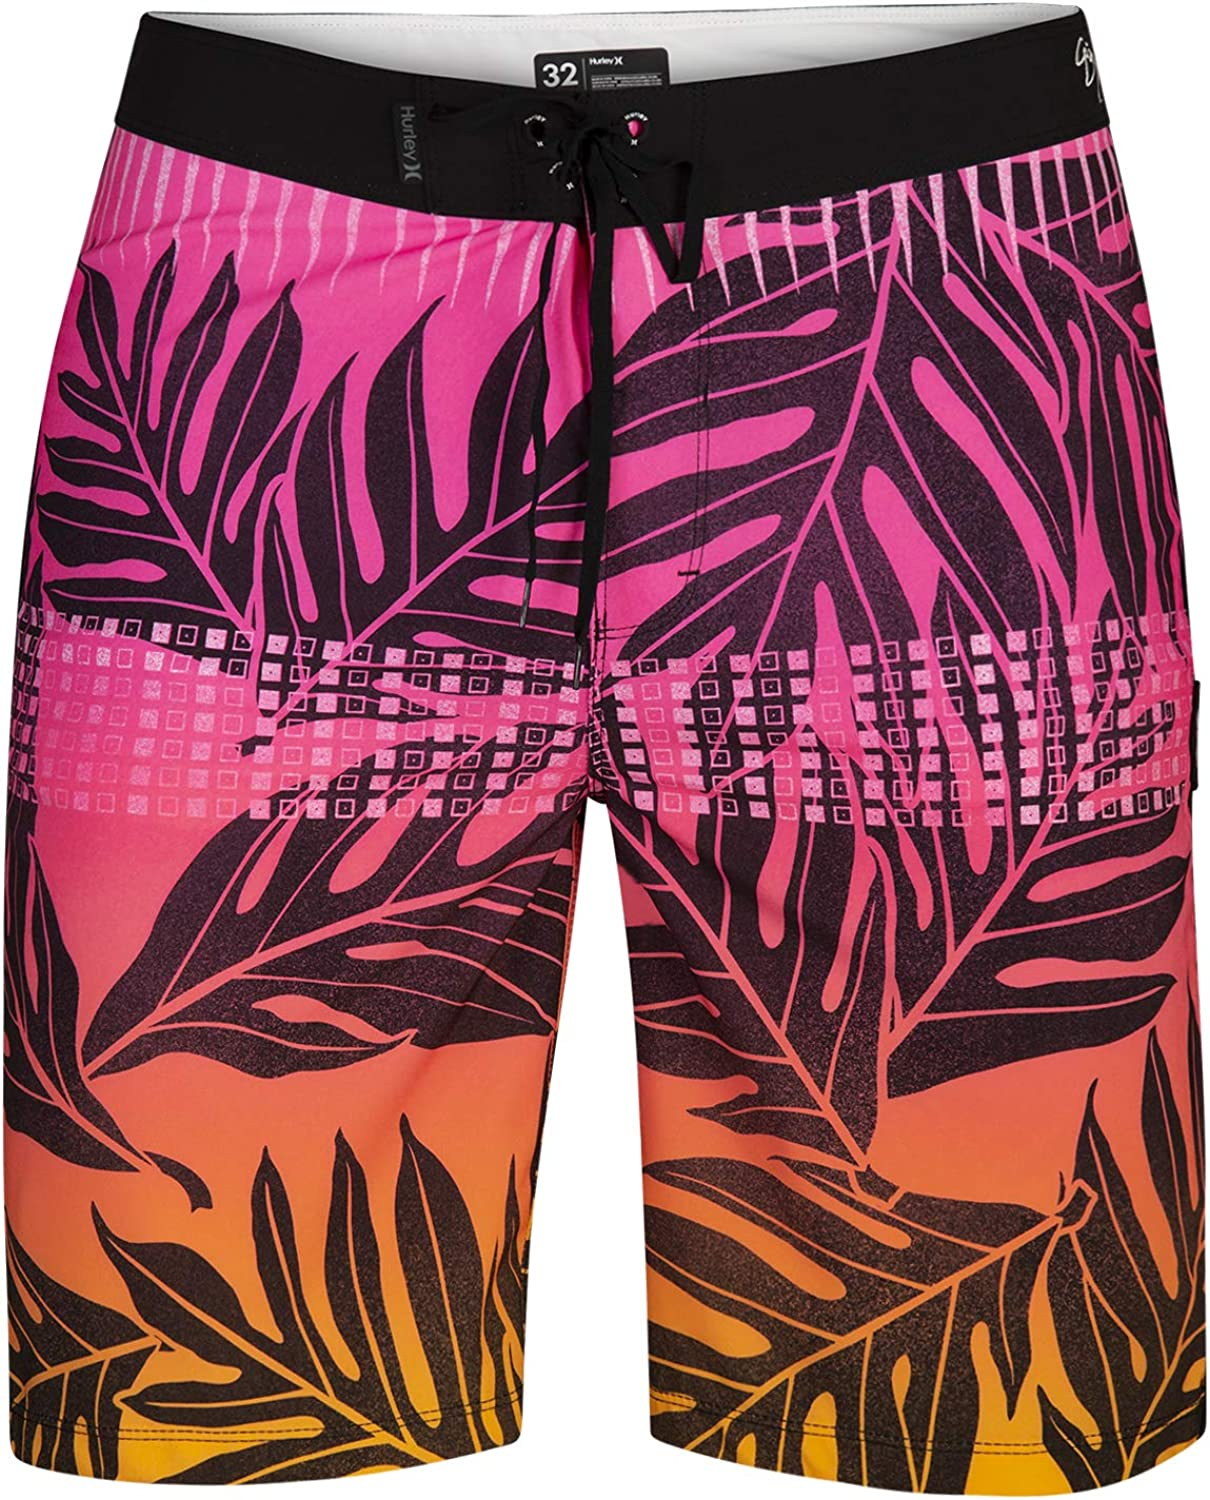 Pacific Blue M Hurley Boys Pull On Board Shorts